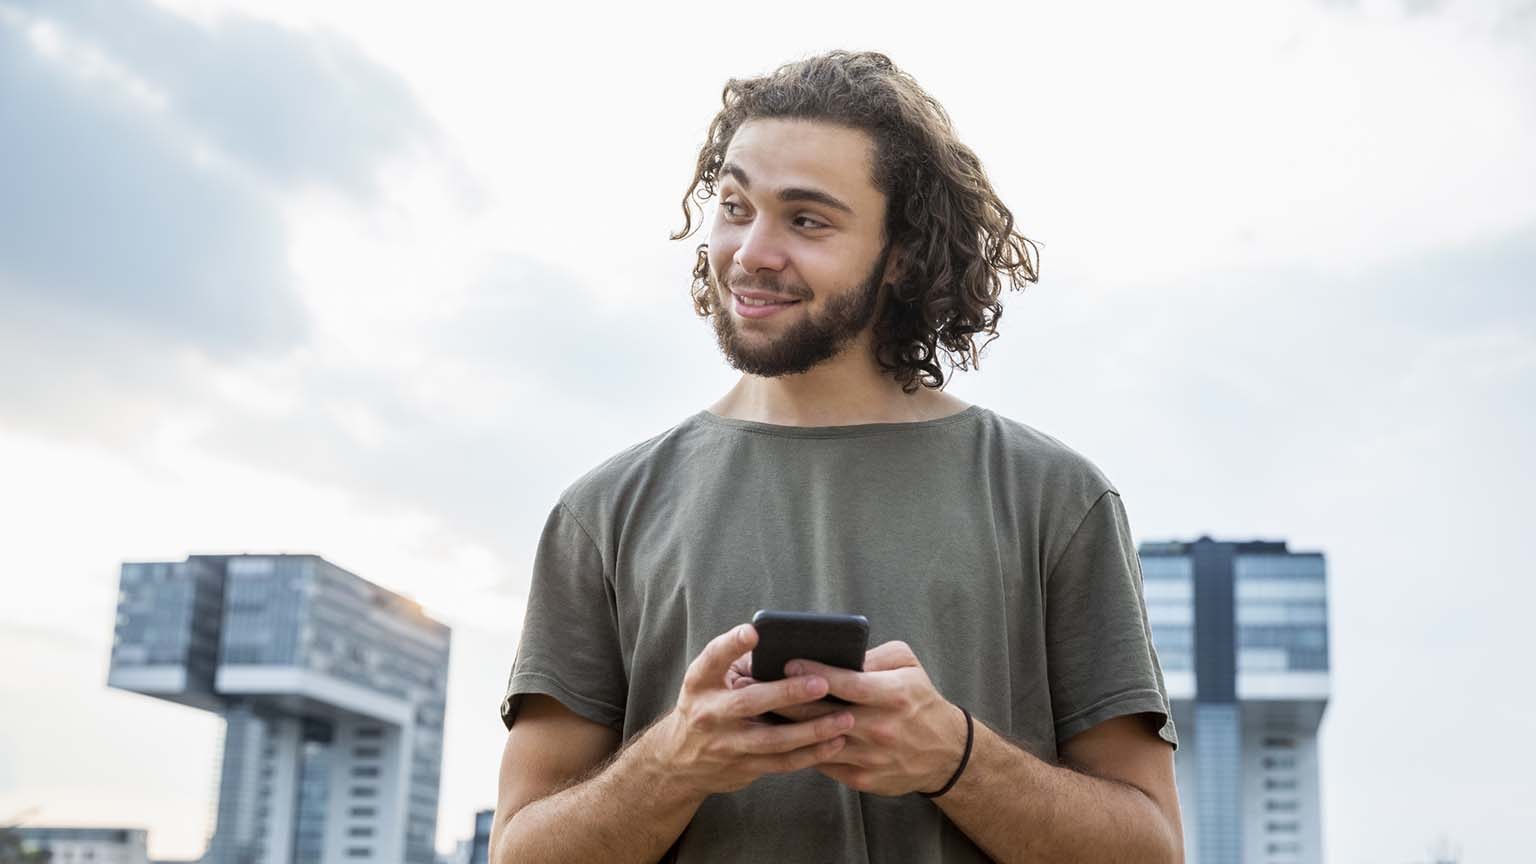 Germany, Cologne, smiling young man holding cell phone looking sideways